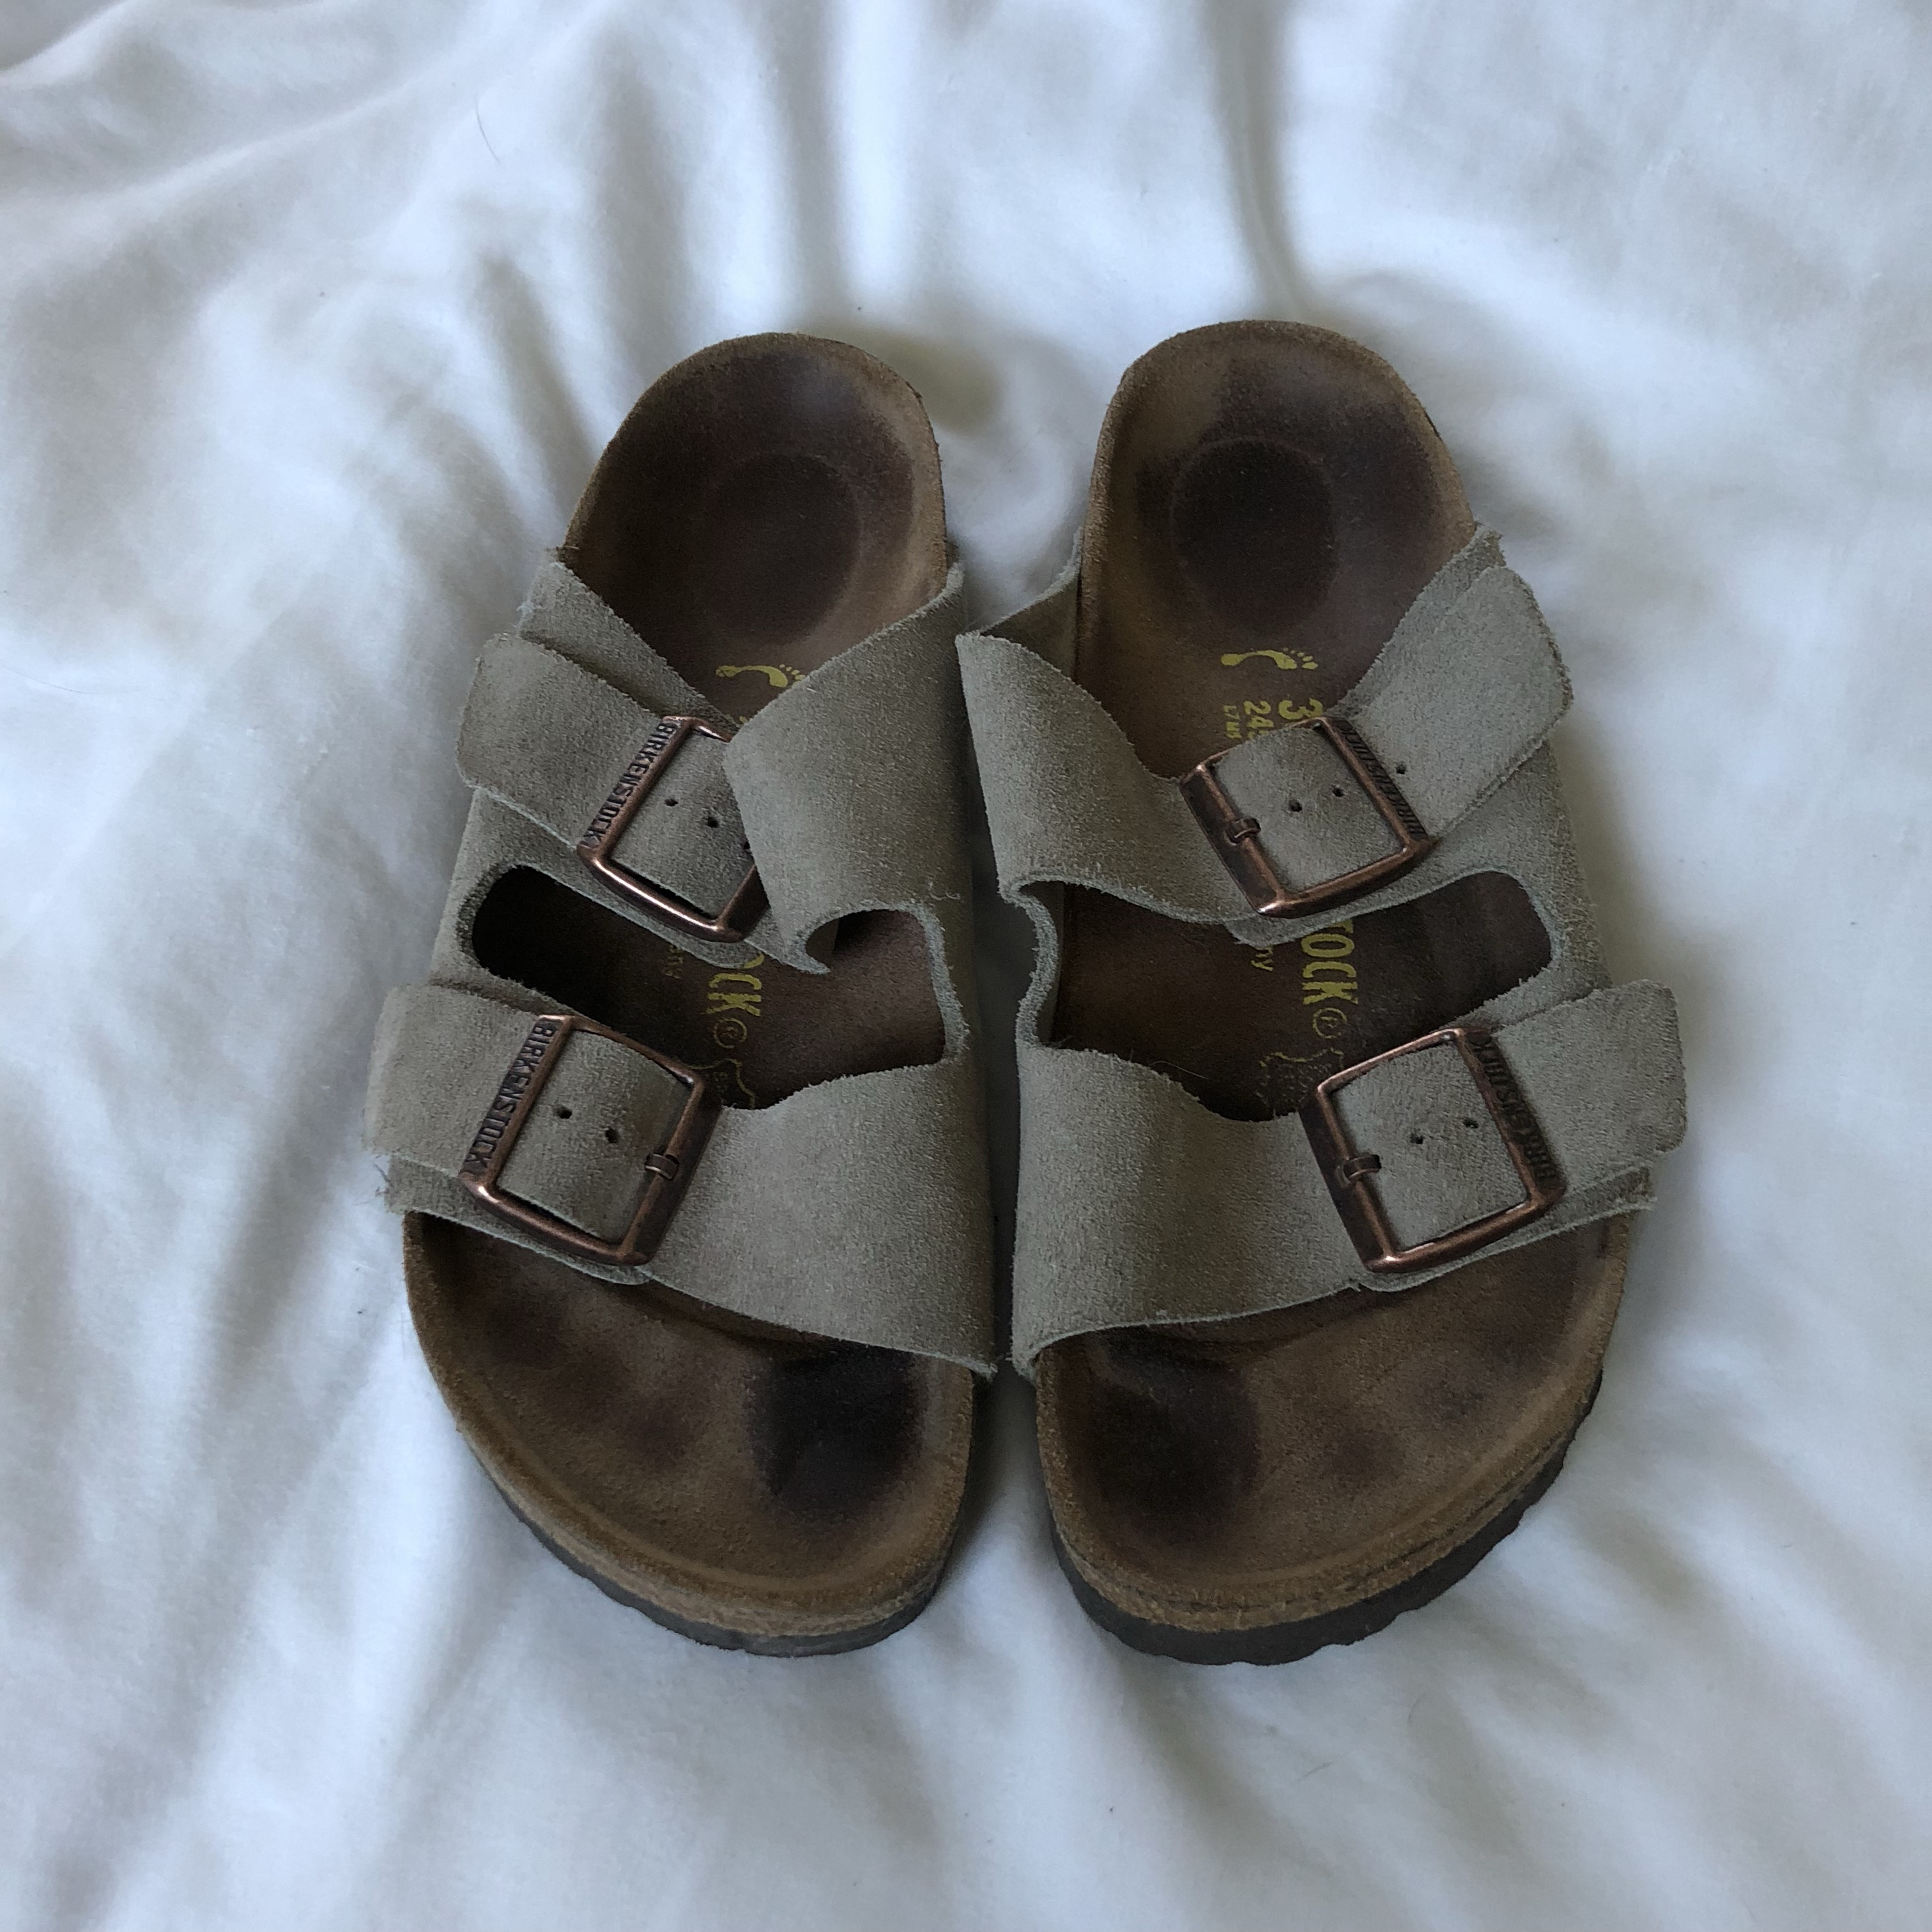 Women's Taupe Birkenstocks Size 38 Worn, but still Depop